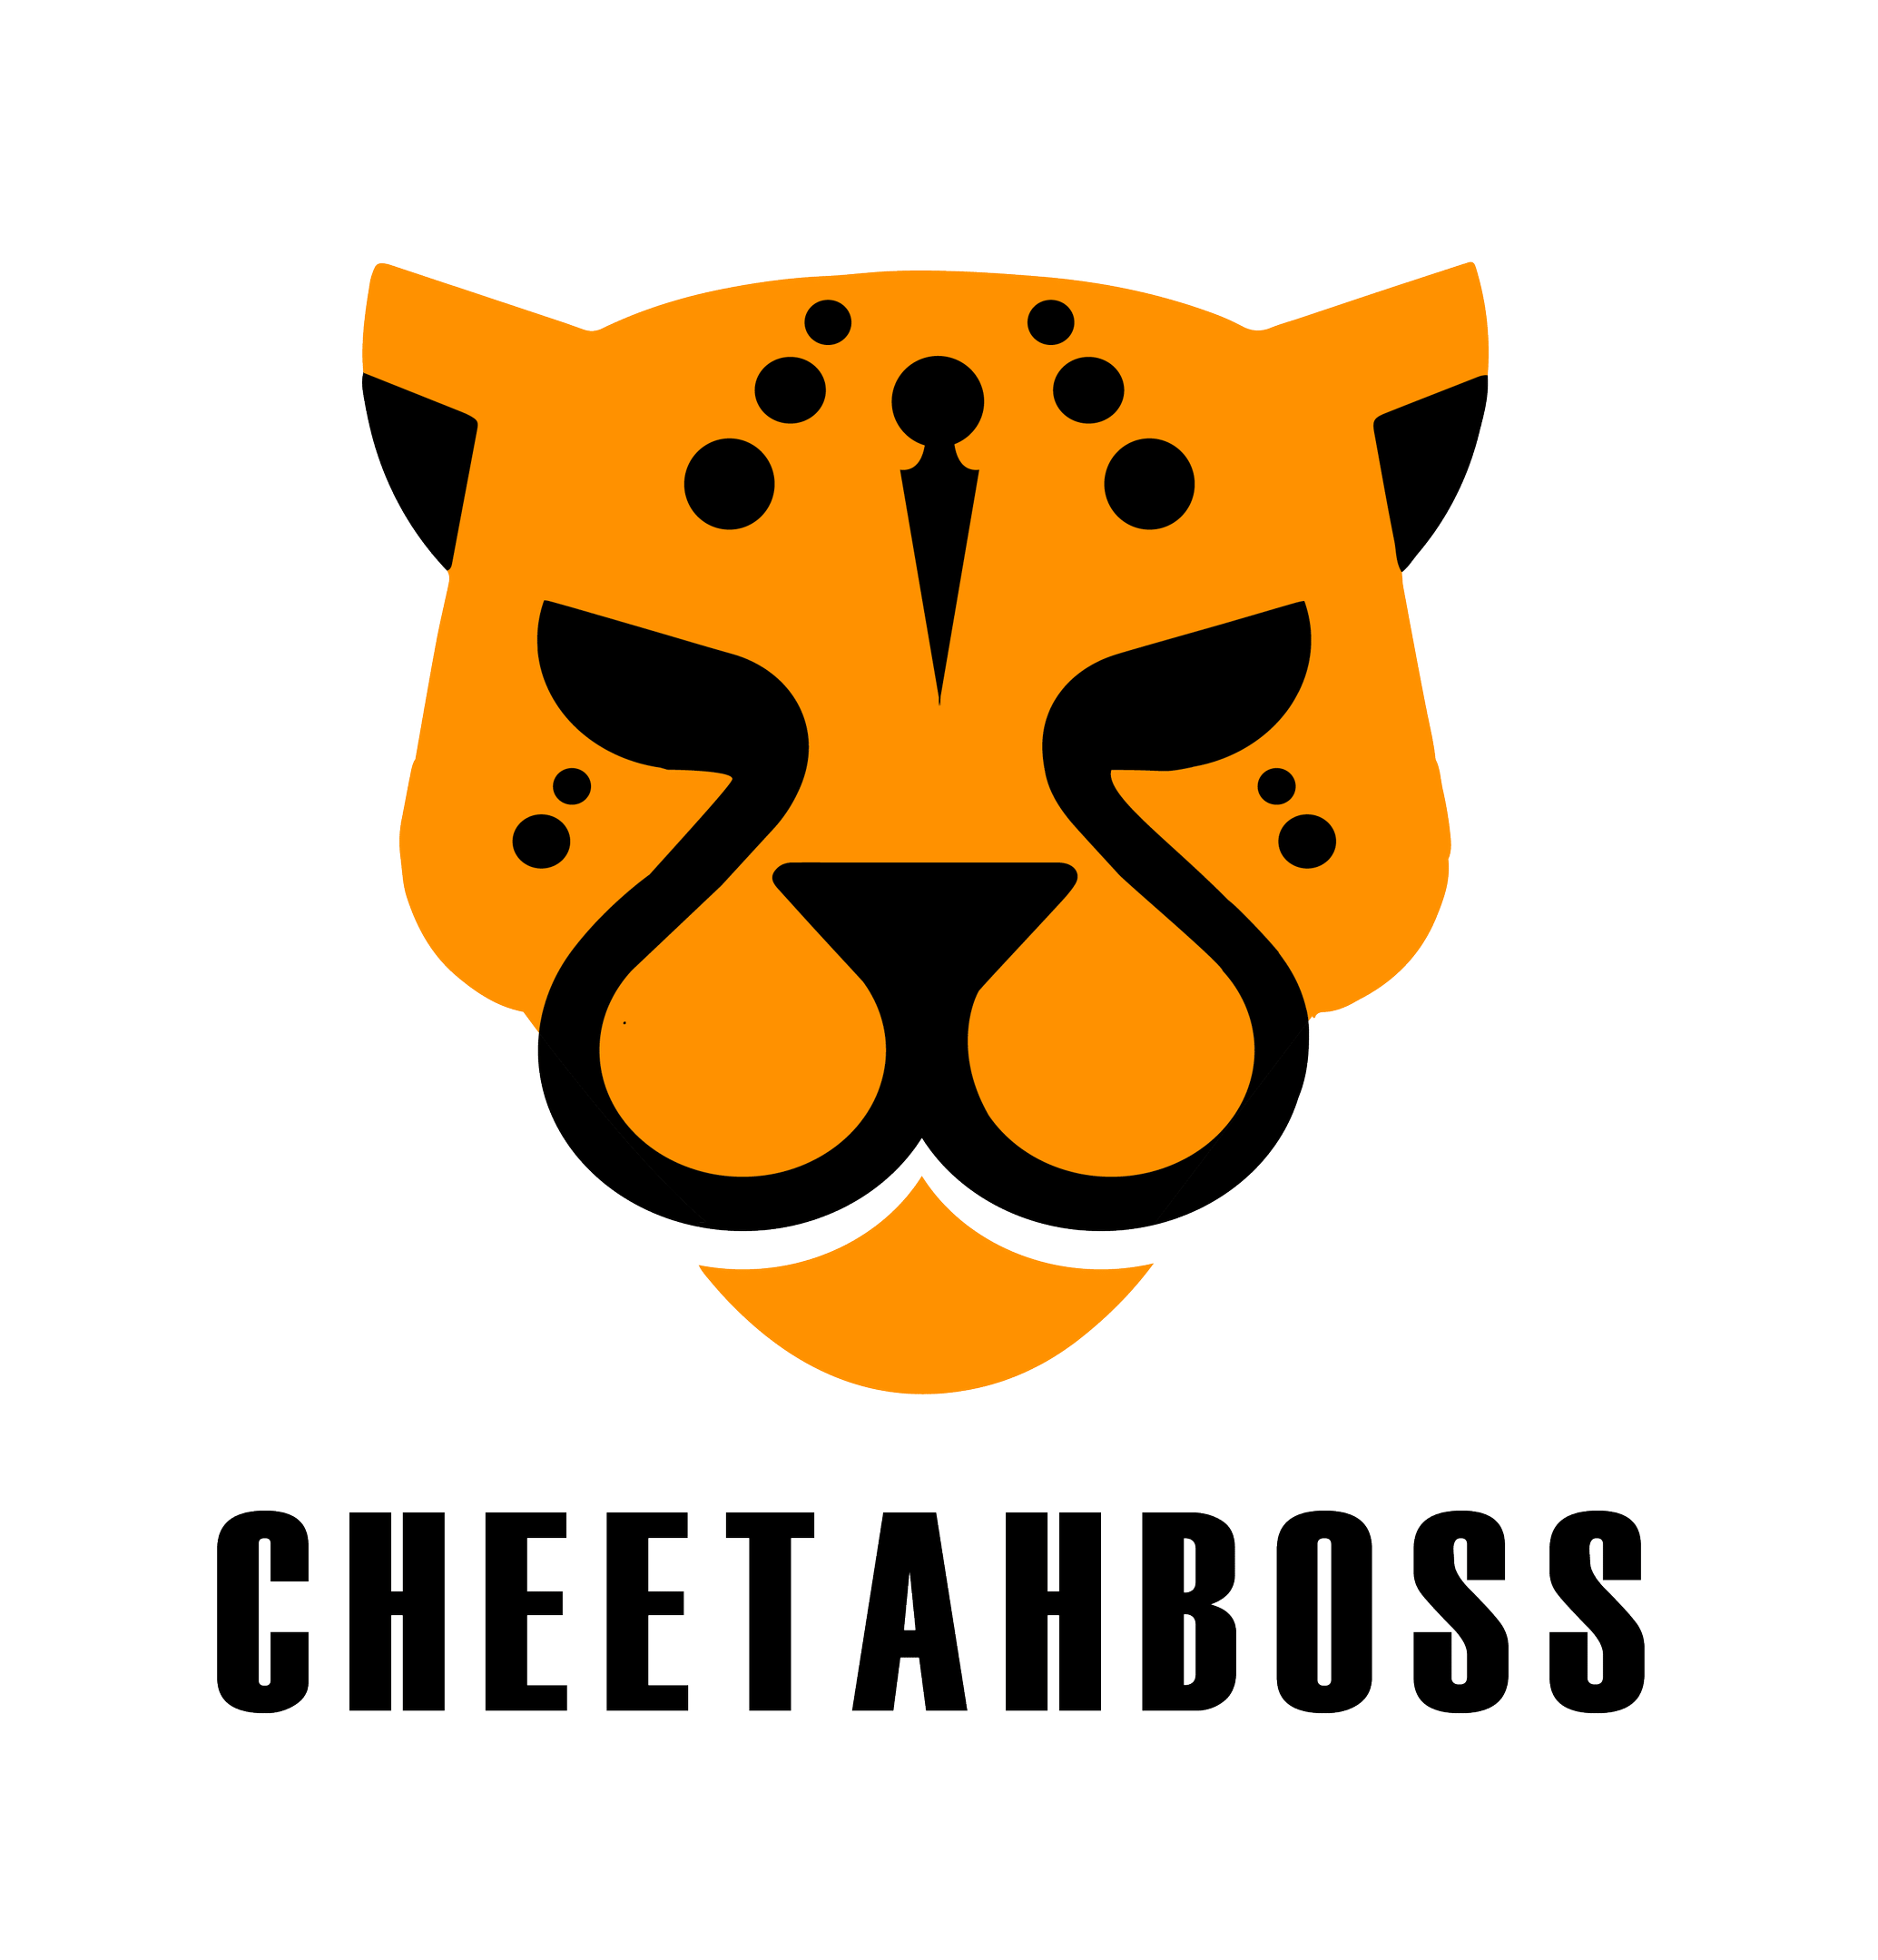 Cheetahboss